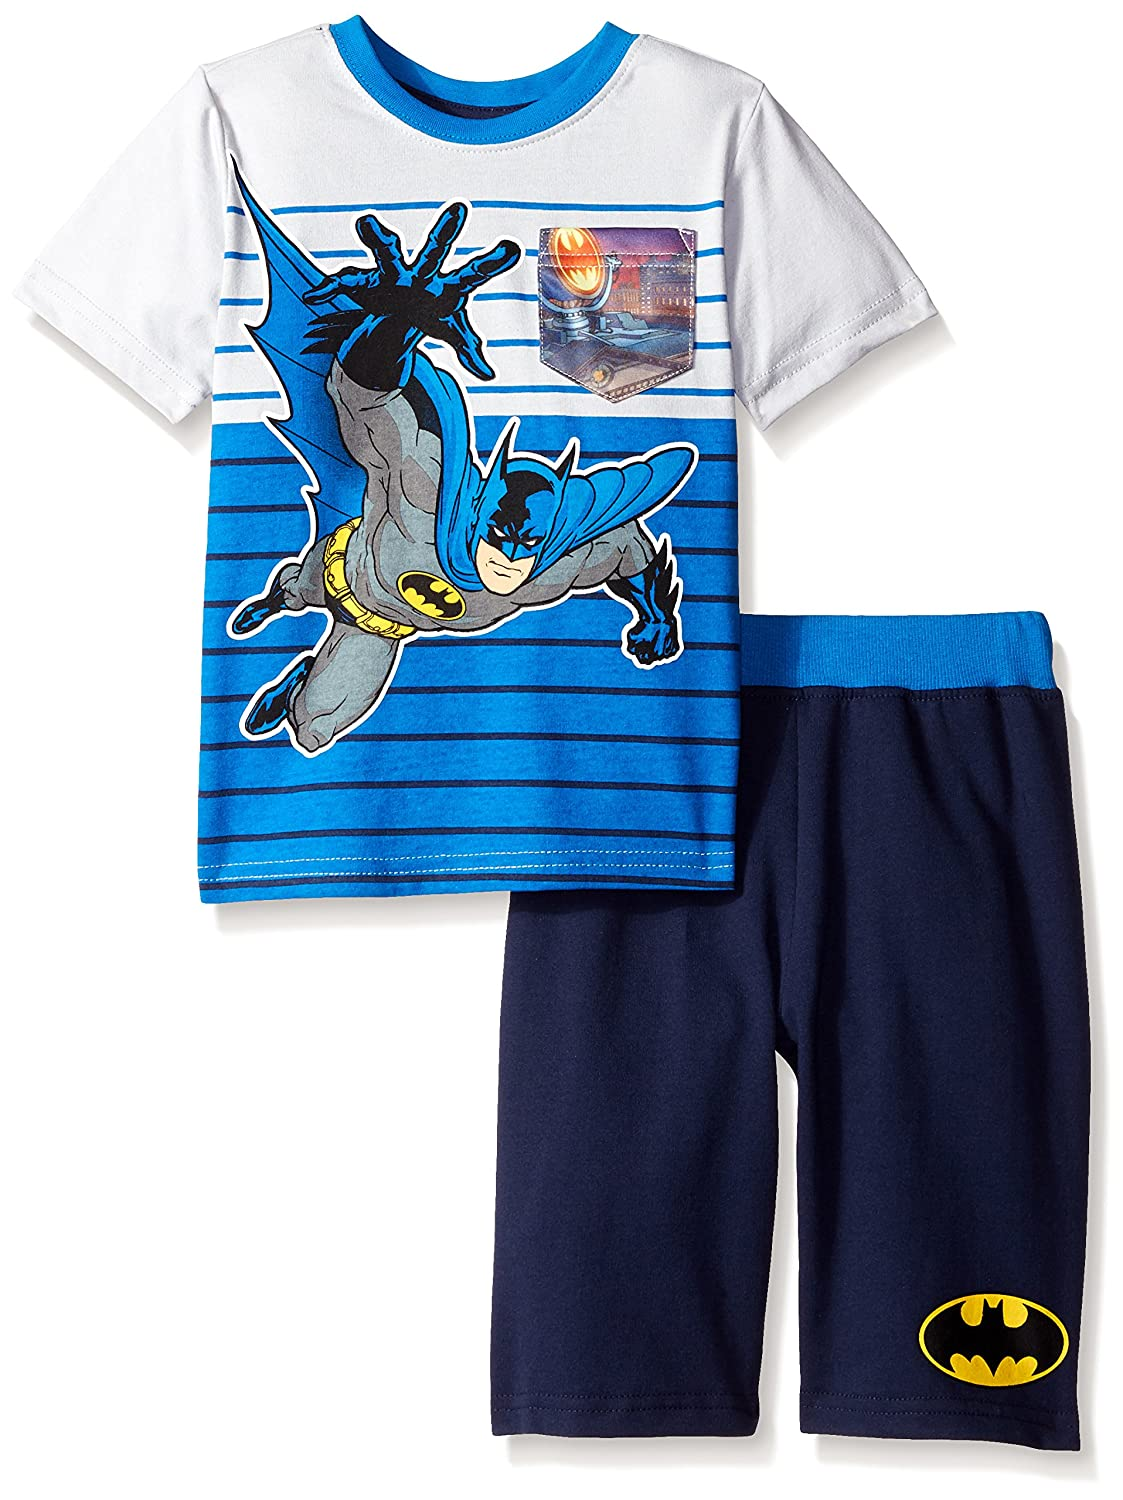 Batman Boys' 2pc Top and Short Set 2 piece Batman short set